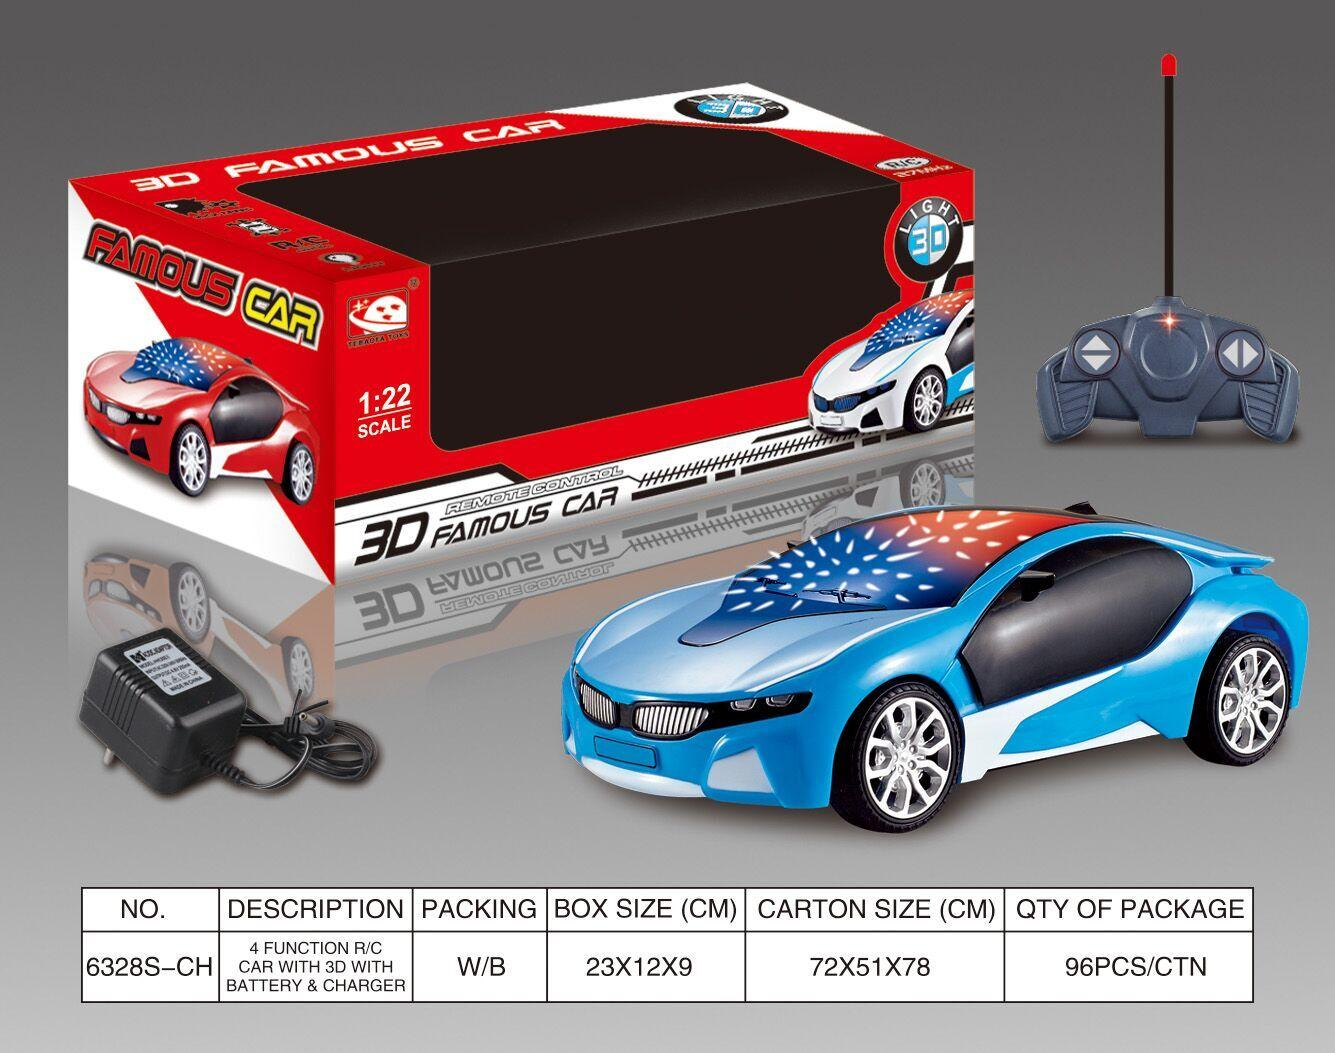 3D Famous Car 4 Channel RC Remote Control Cars with 3D Lights(Included Battery and Charger ) No.:6328S-CH